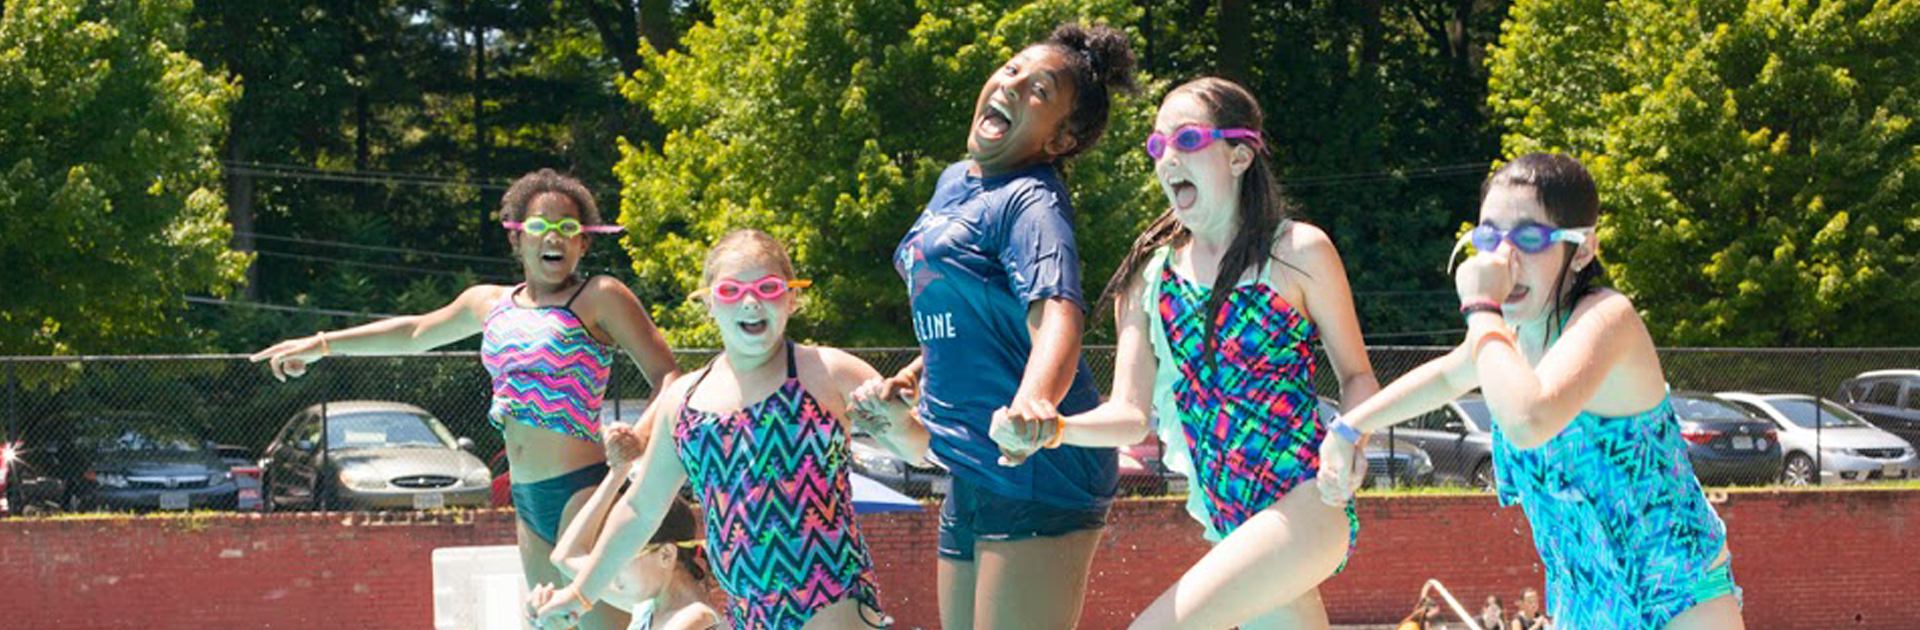 group of young girls smiling while jumping in a pool